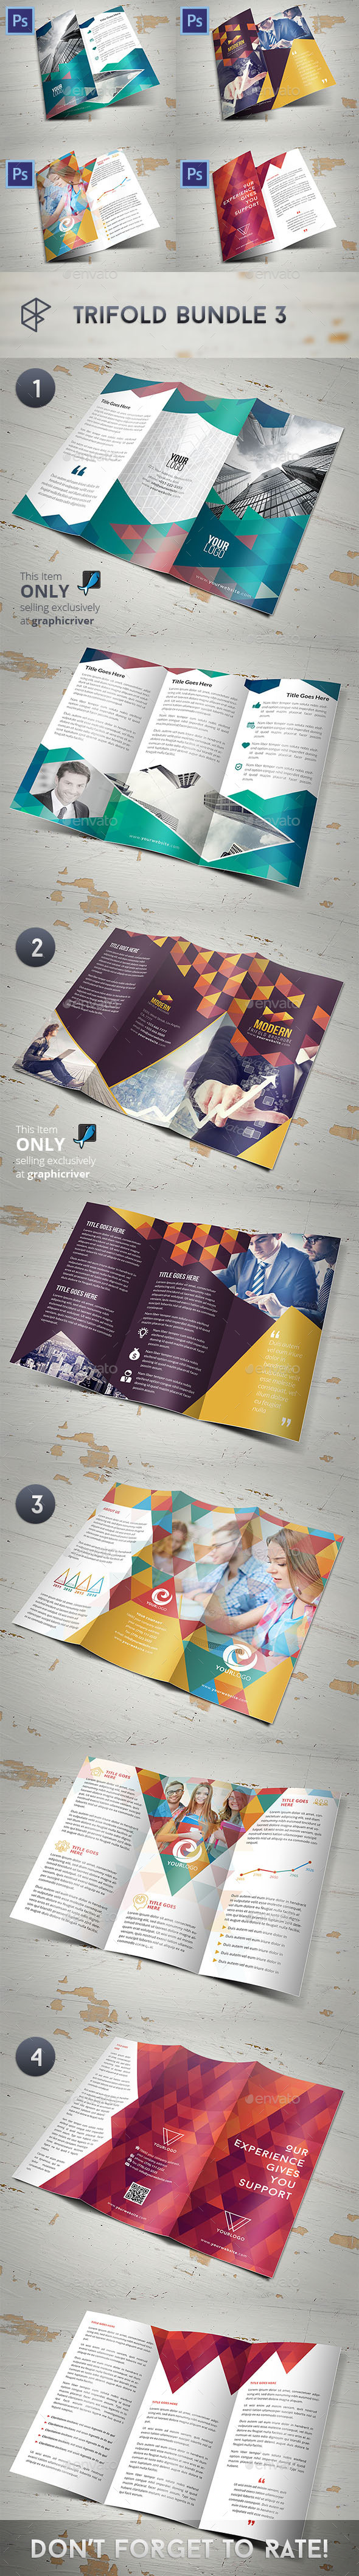 Trifold Bundle 3 - Corporate Brochures